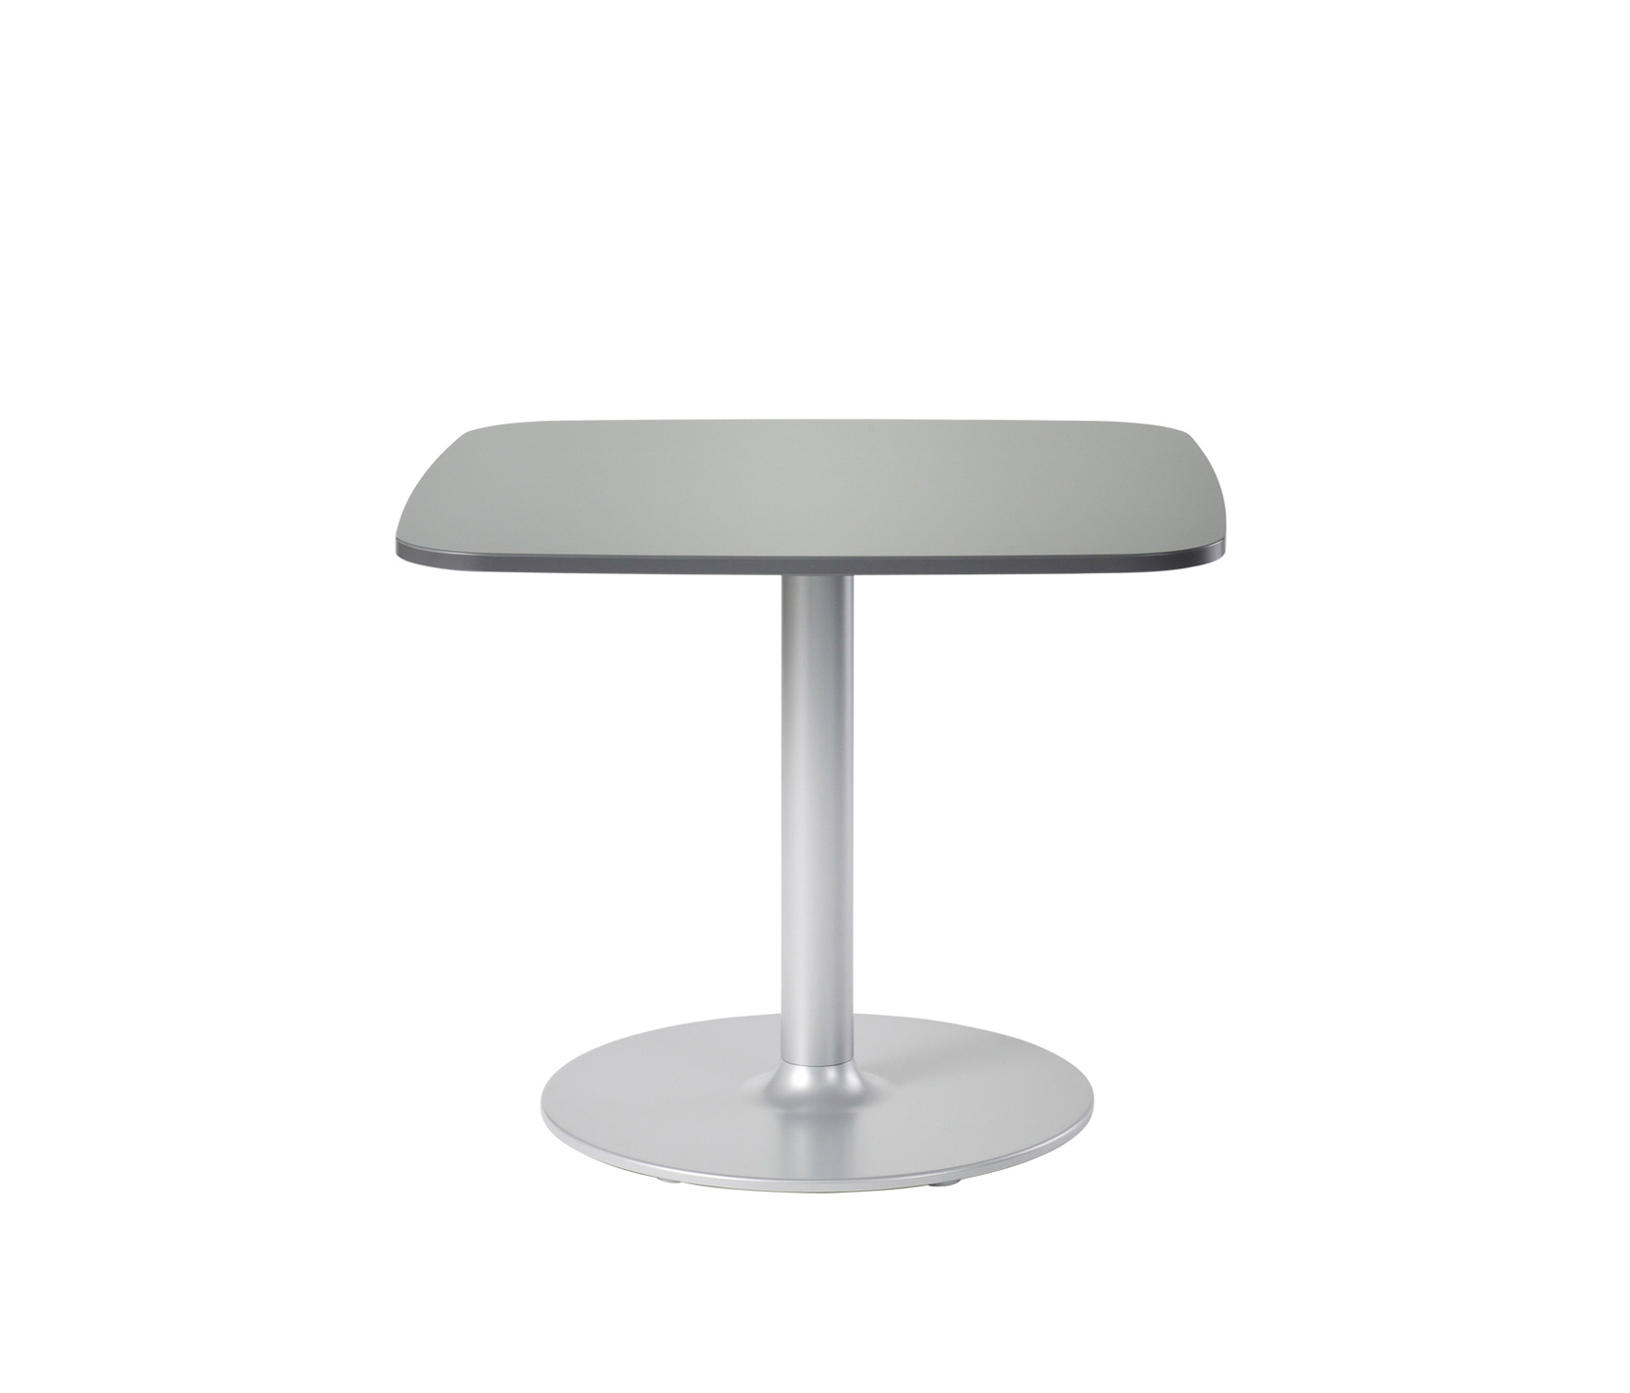 MACAO BISTRO TABLE - Side tables from Wiesner-Hager | Architonic